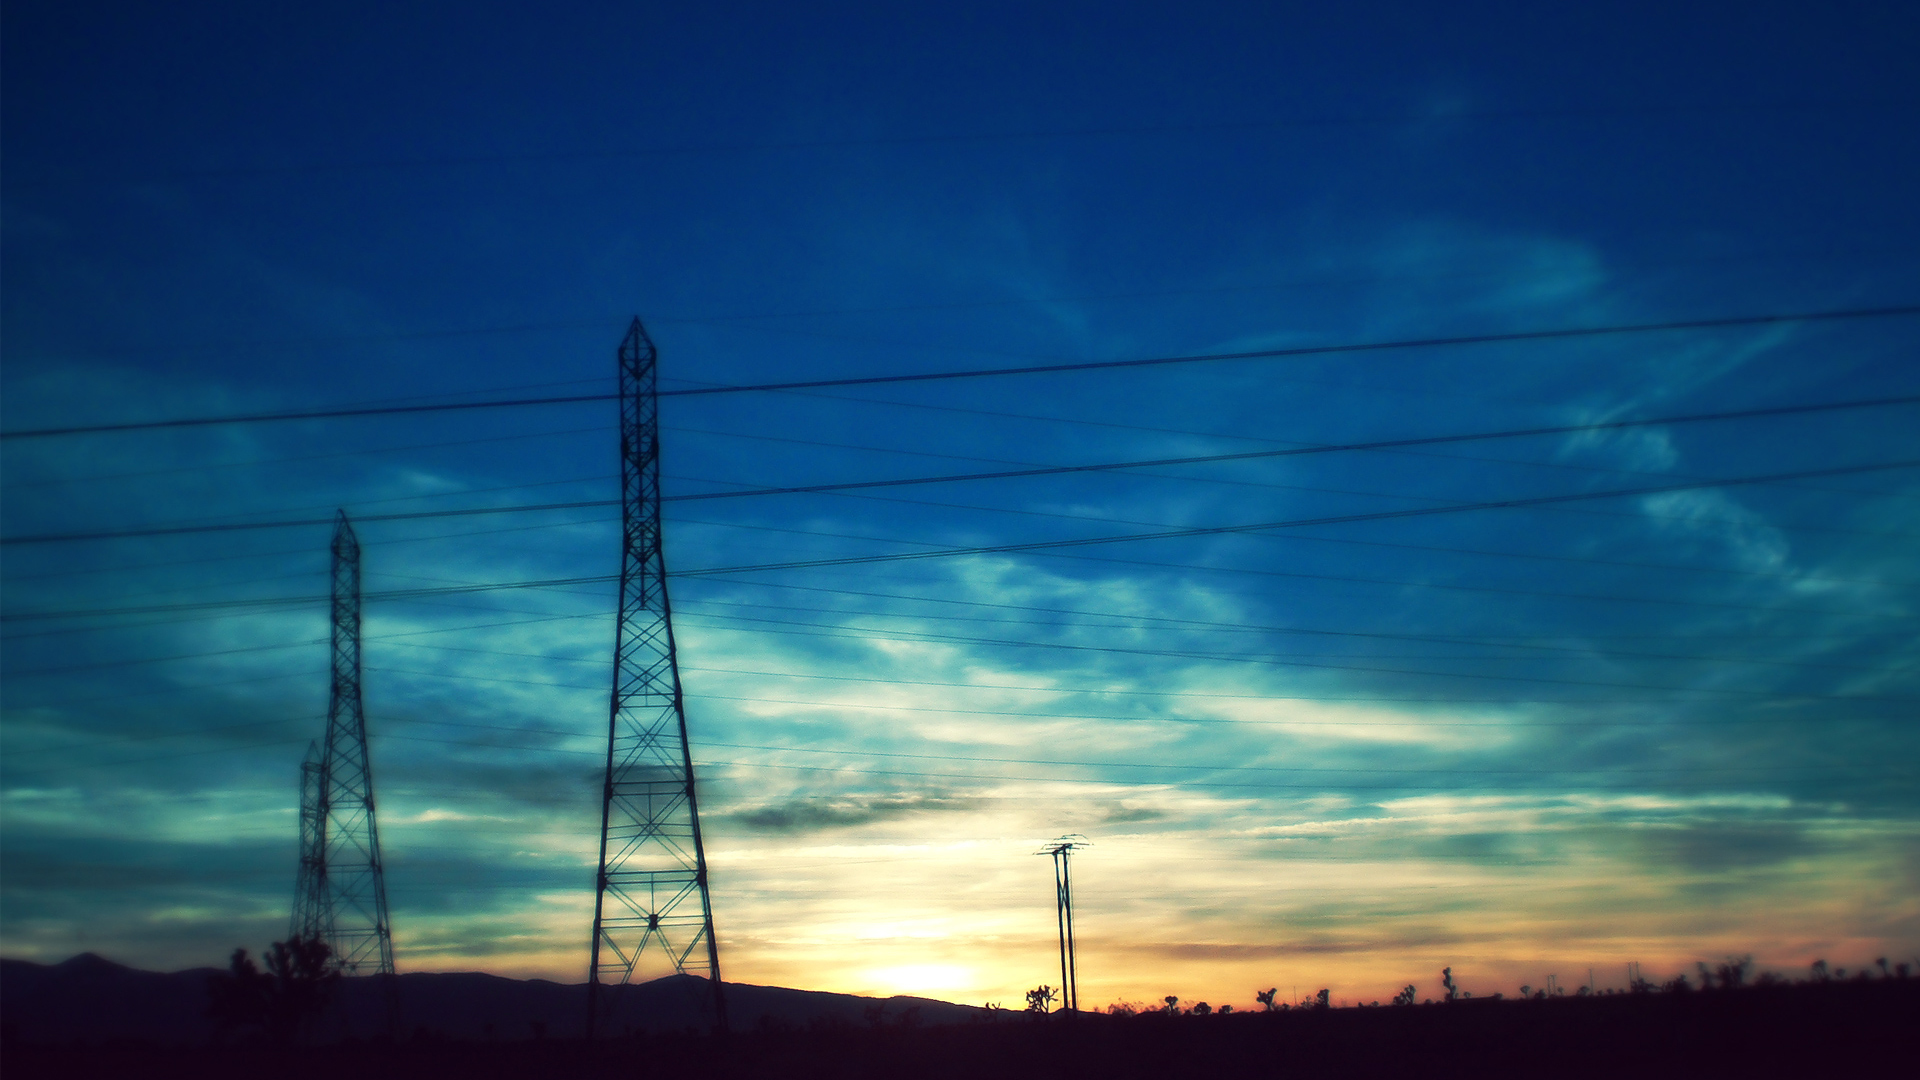 sunset power lines countryside HD Wallpaper